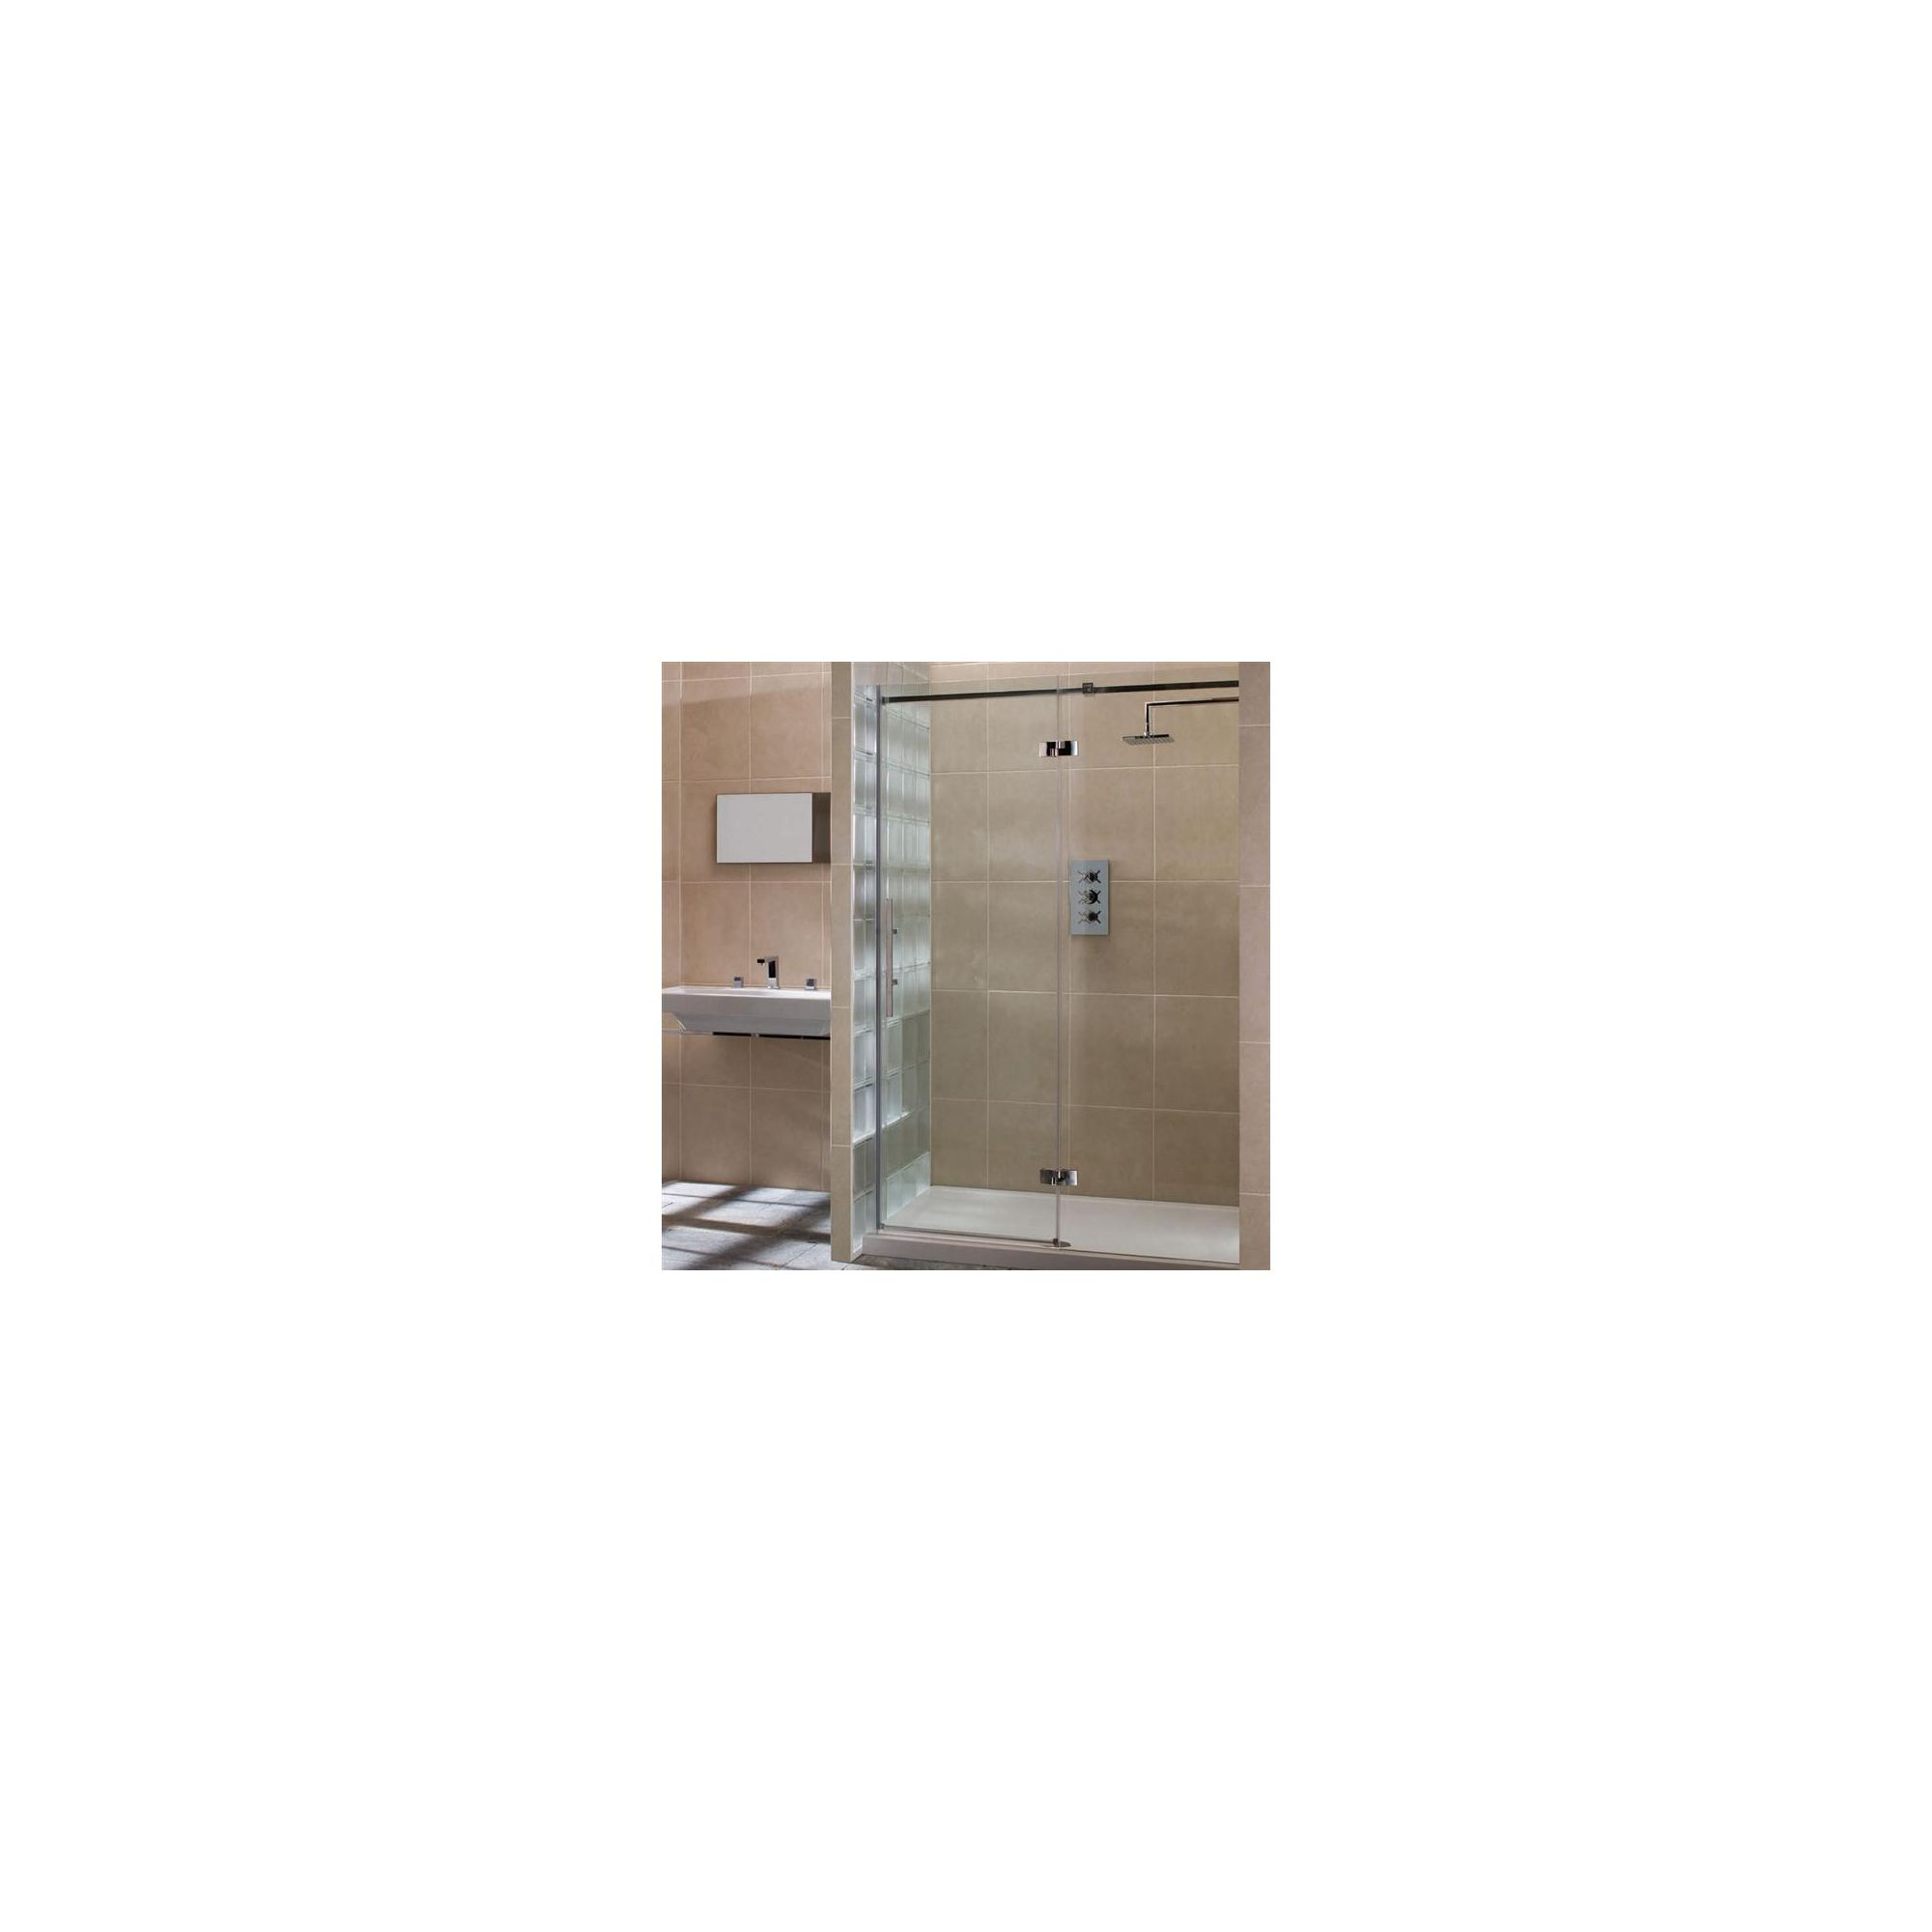 Merlyn Vivid Nine Hinged Door Alcove Shower Enclosure with Inline Panel, 1400mm x 900mm, Right Handed, Low Profile Tray, 8mm Glass at Tesco Direct